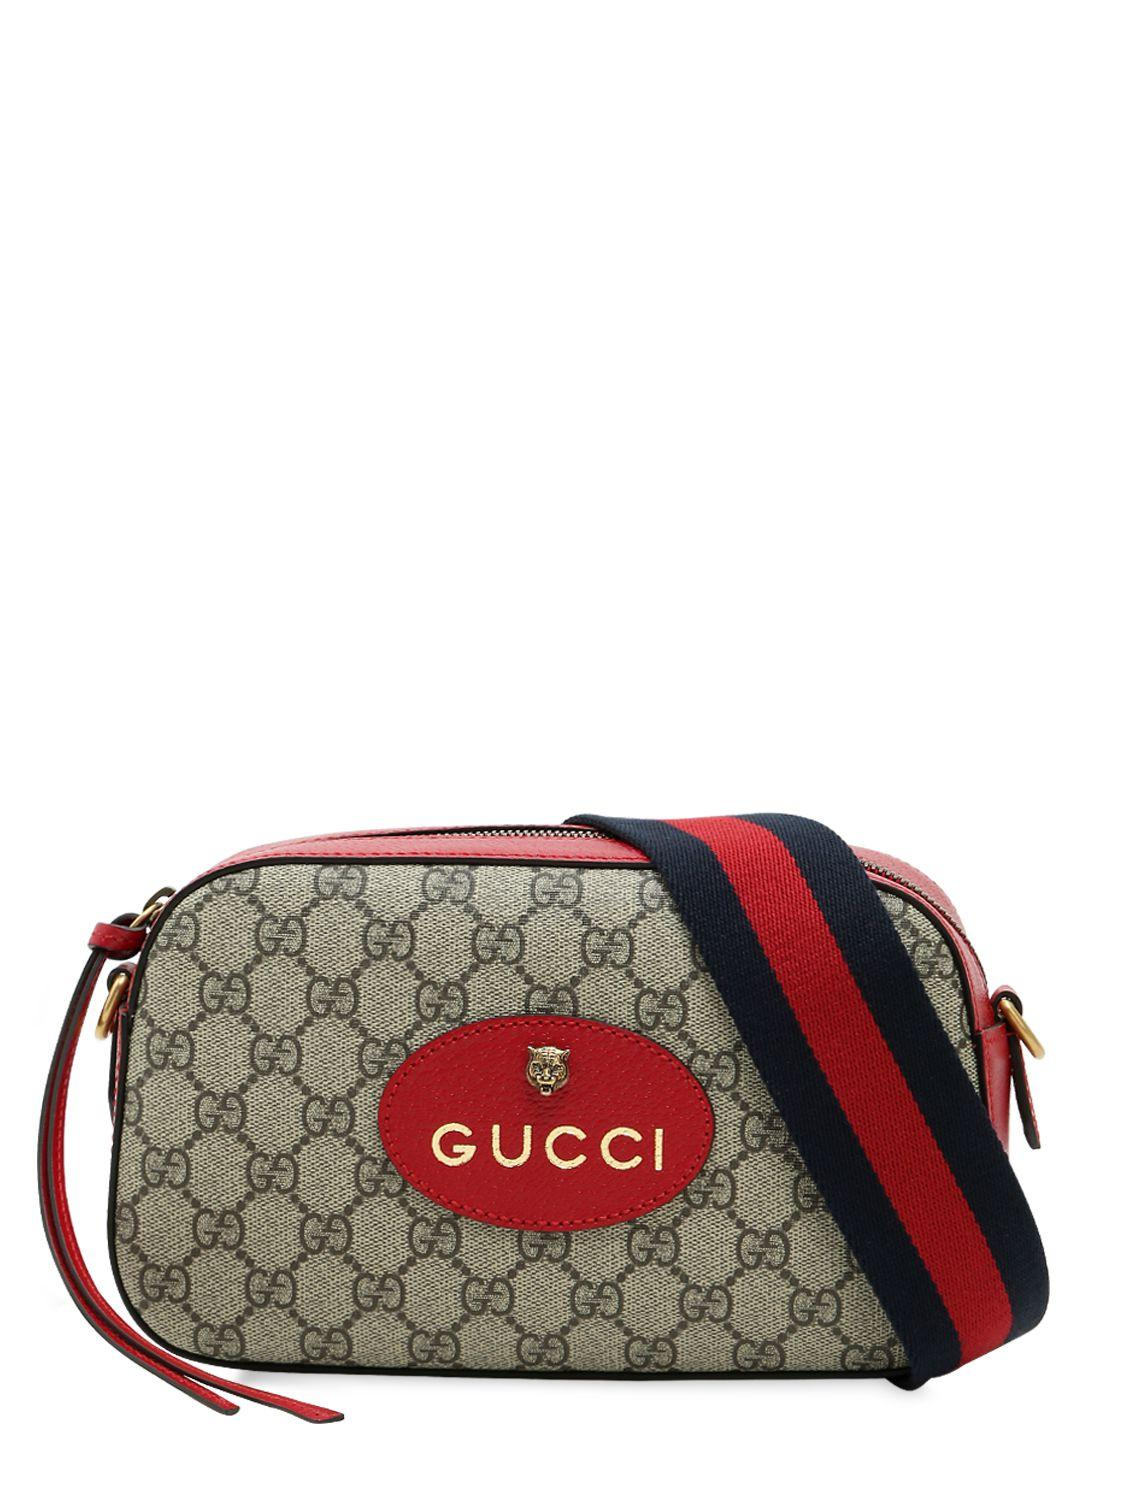 ddee7fce15c1 Always-Authentic Gucci Vintage Bags - Tradesy Keeps it Real